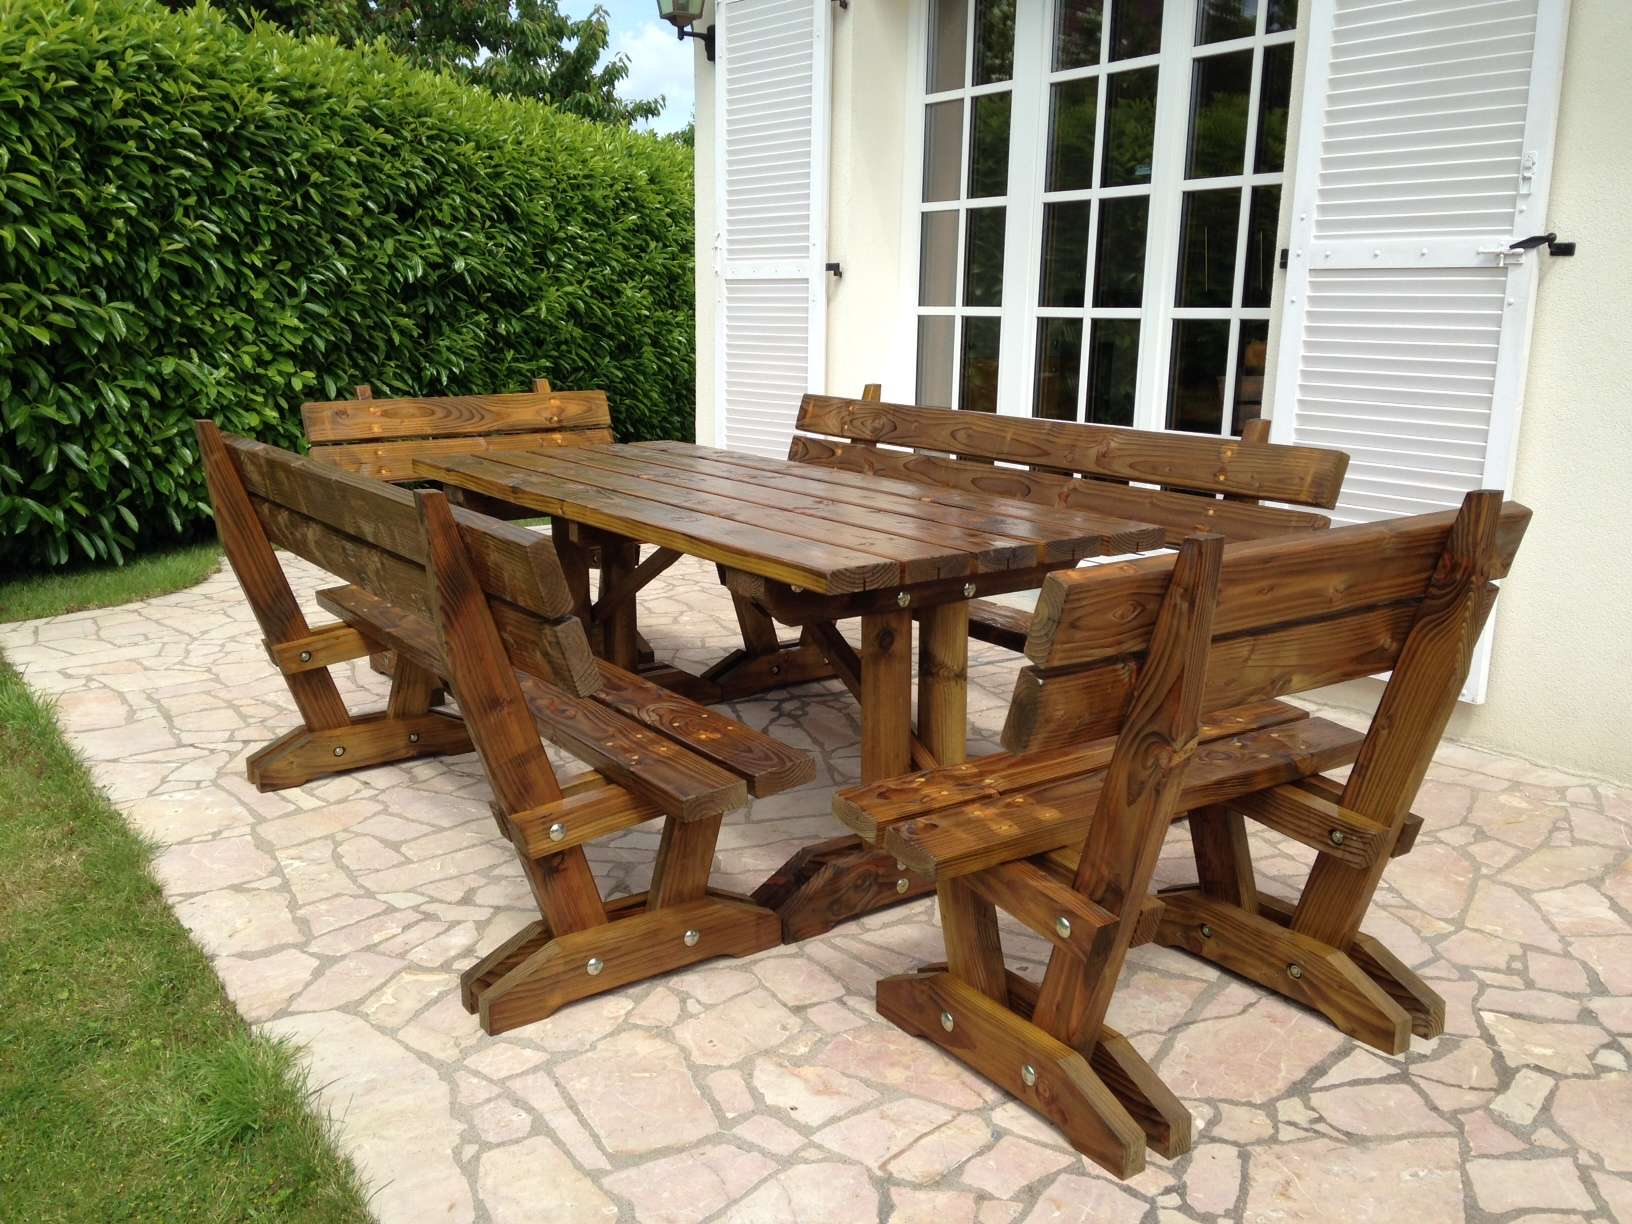 Sarl sciebois fabricant de mobiliers d 39 ext rieur en bois for Table exterieur sur mesure